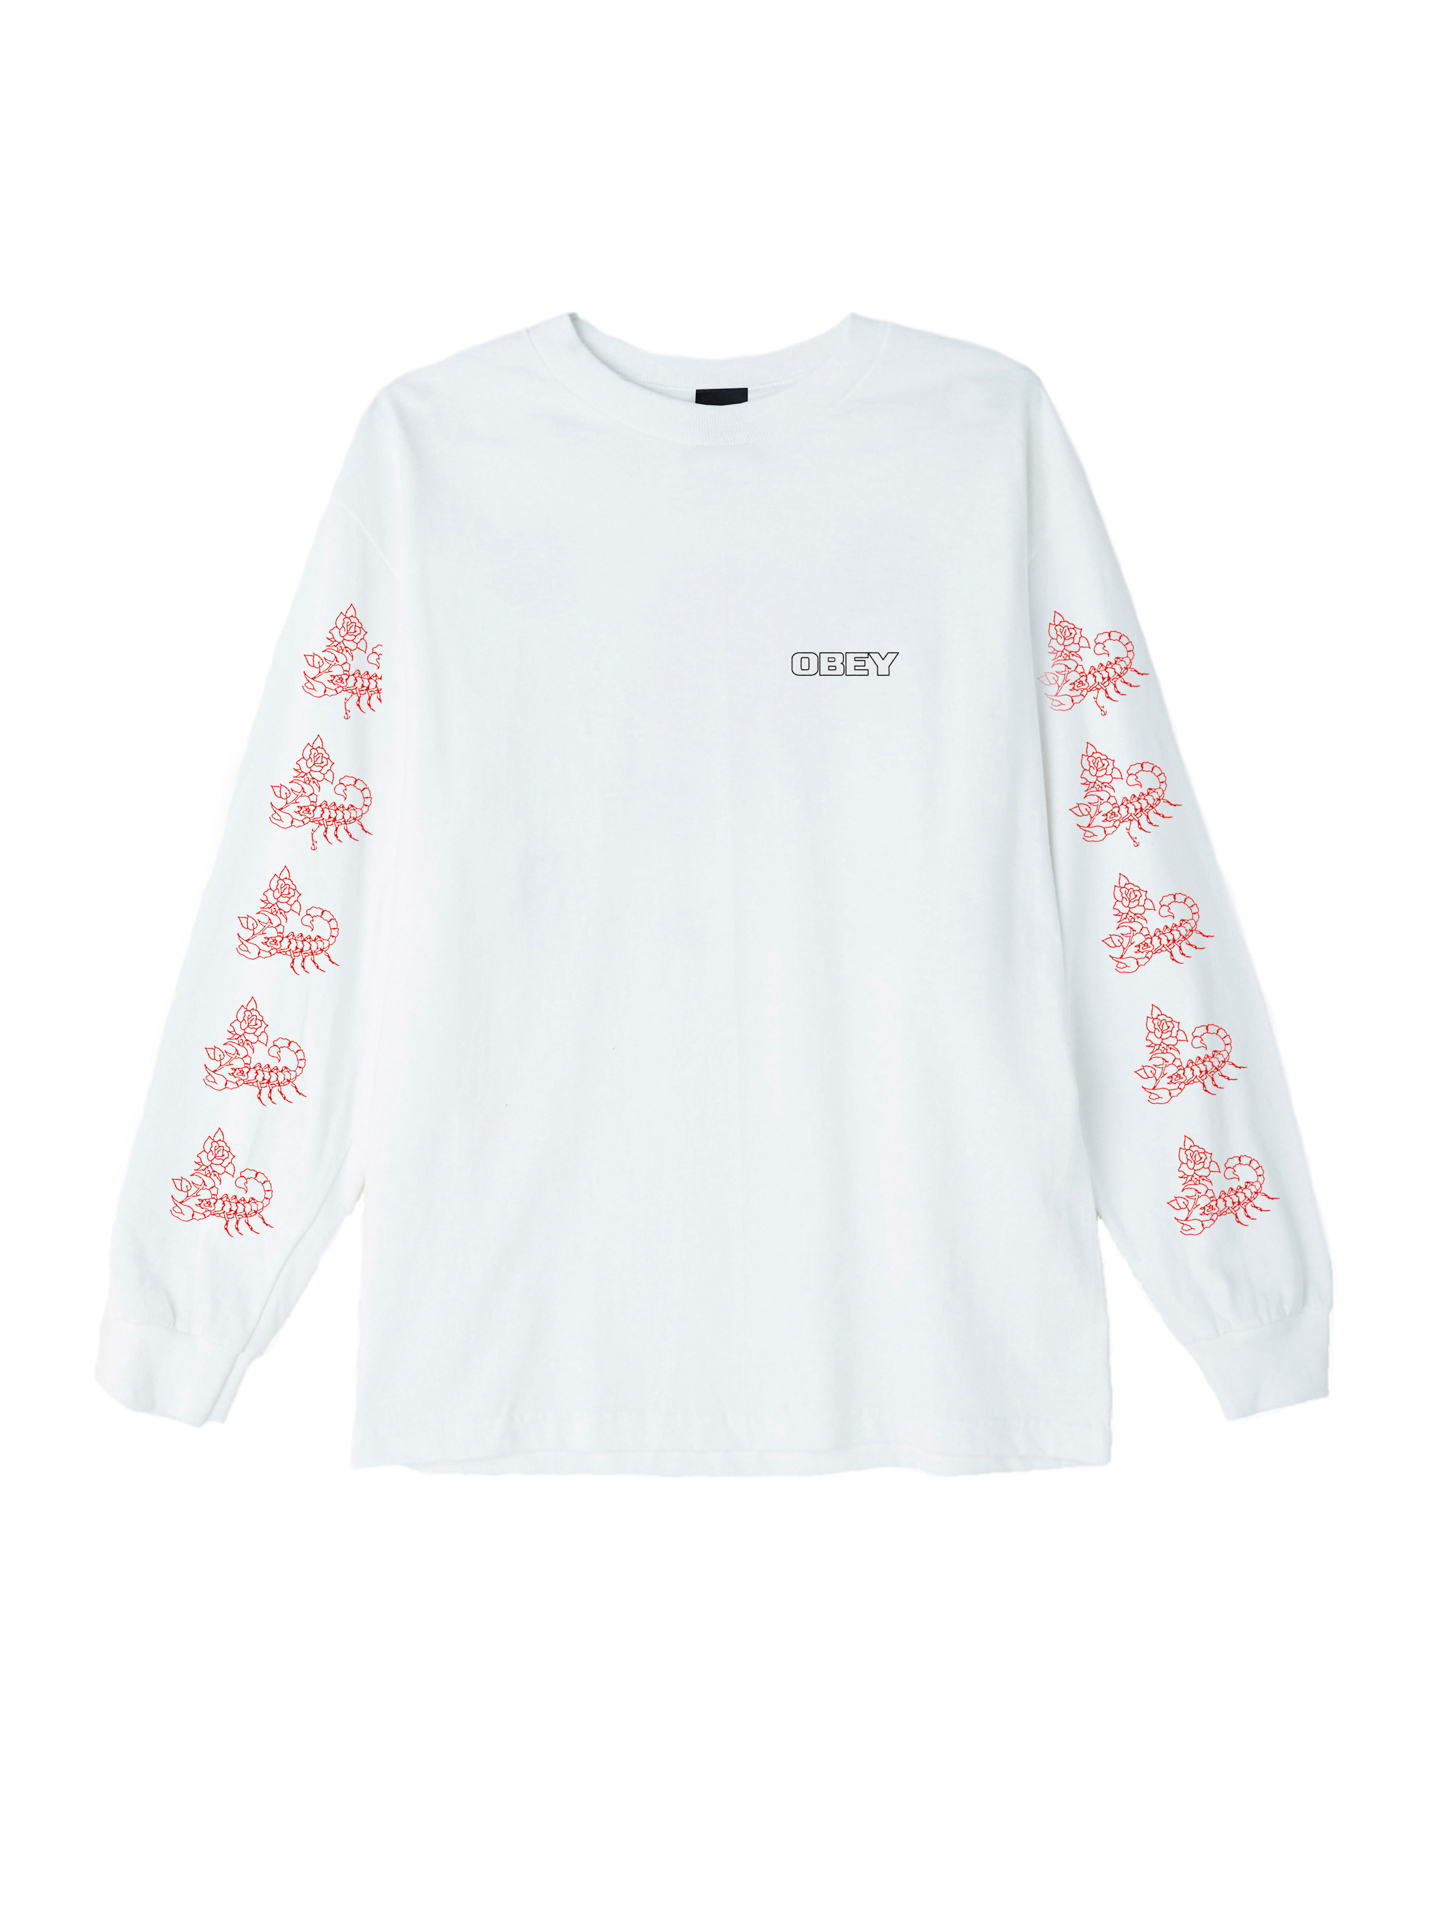 1a8dfe77e71 Scorpion Rose Basic Long Sleeve T-Shirt - Obey Clothing UK